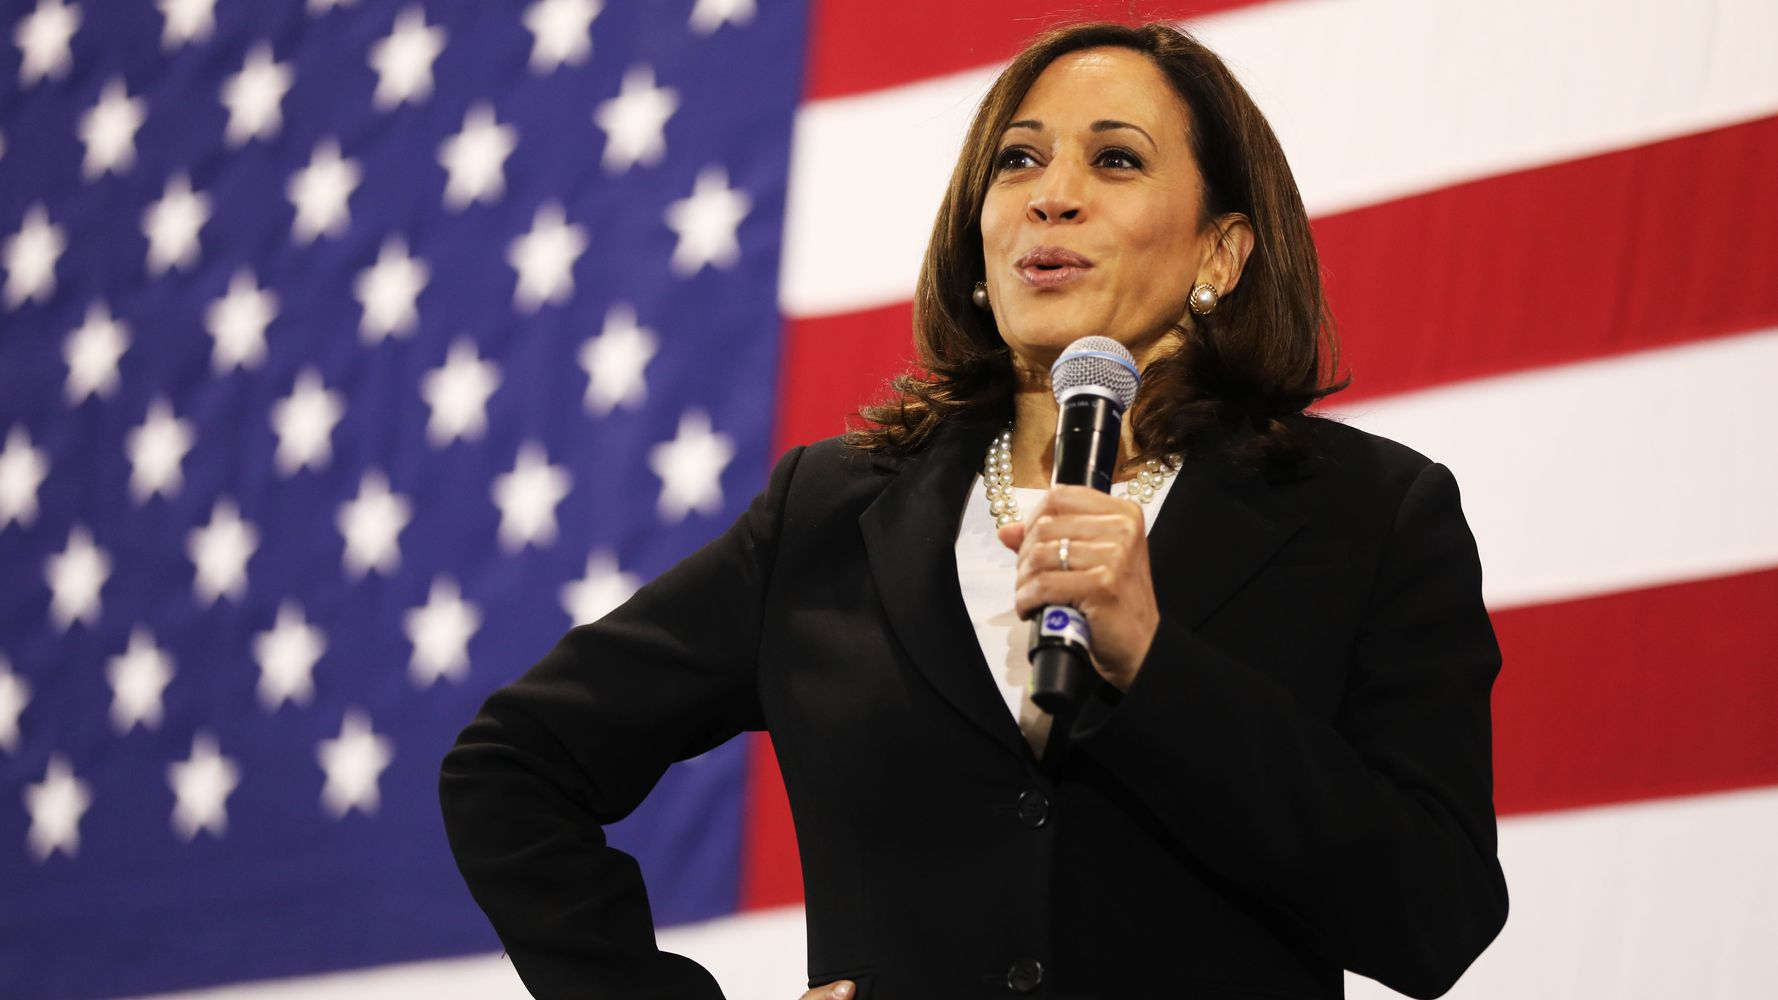 www.huffpost.com: Are Indian-American Voters Ready To Embrace Kamala Harris?